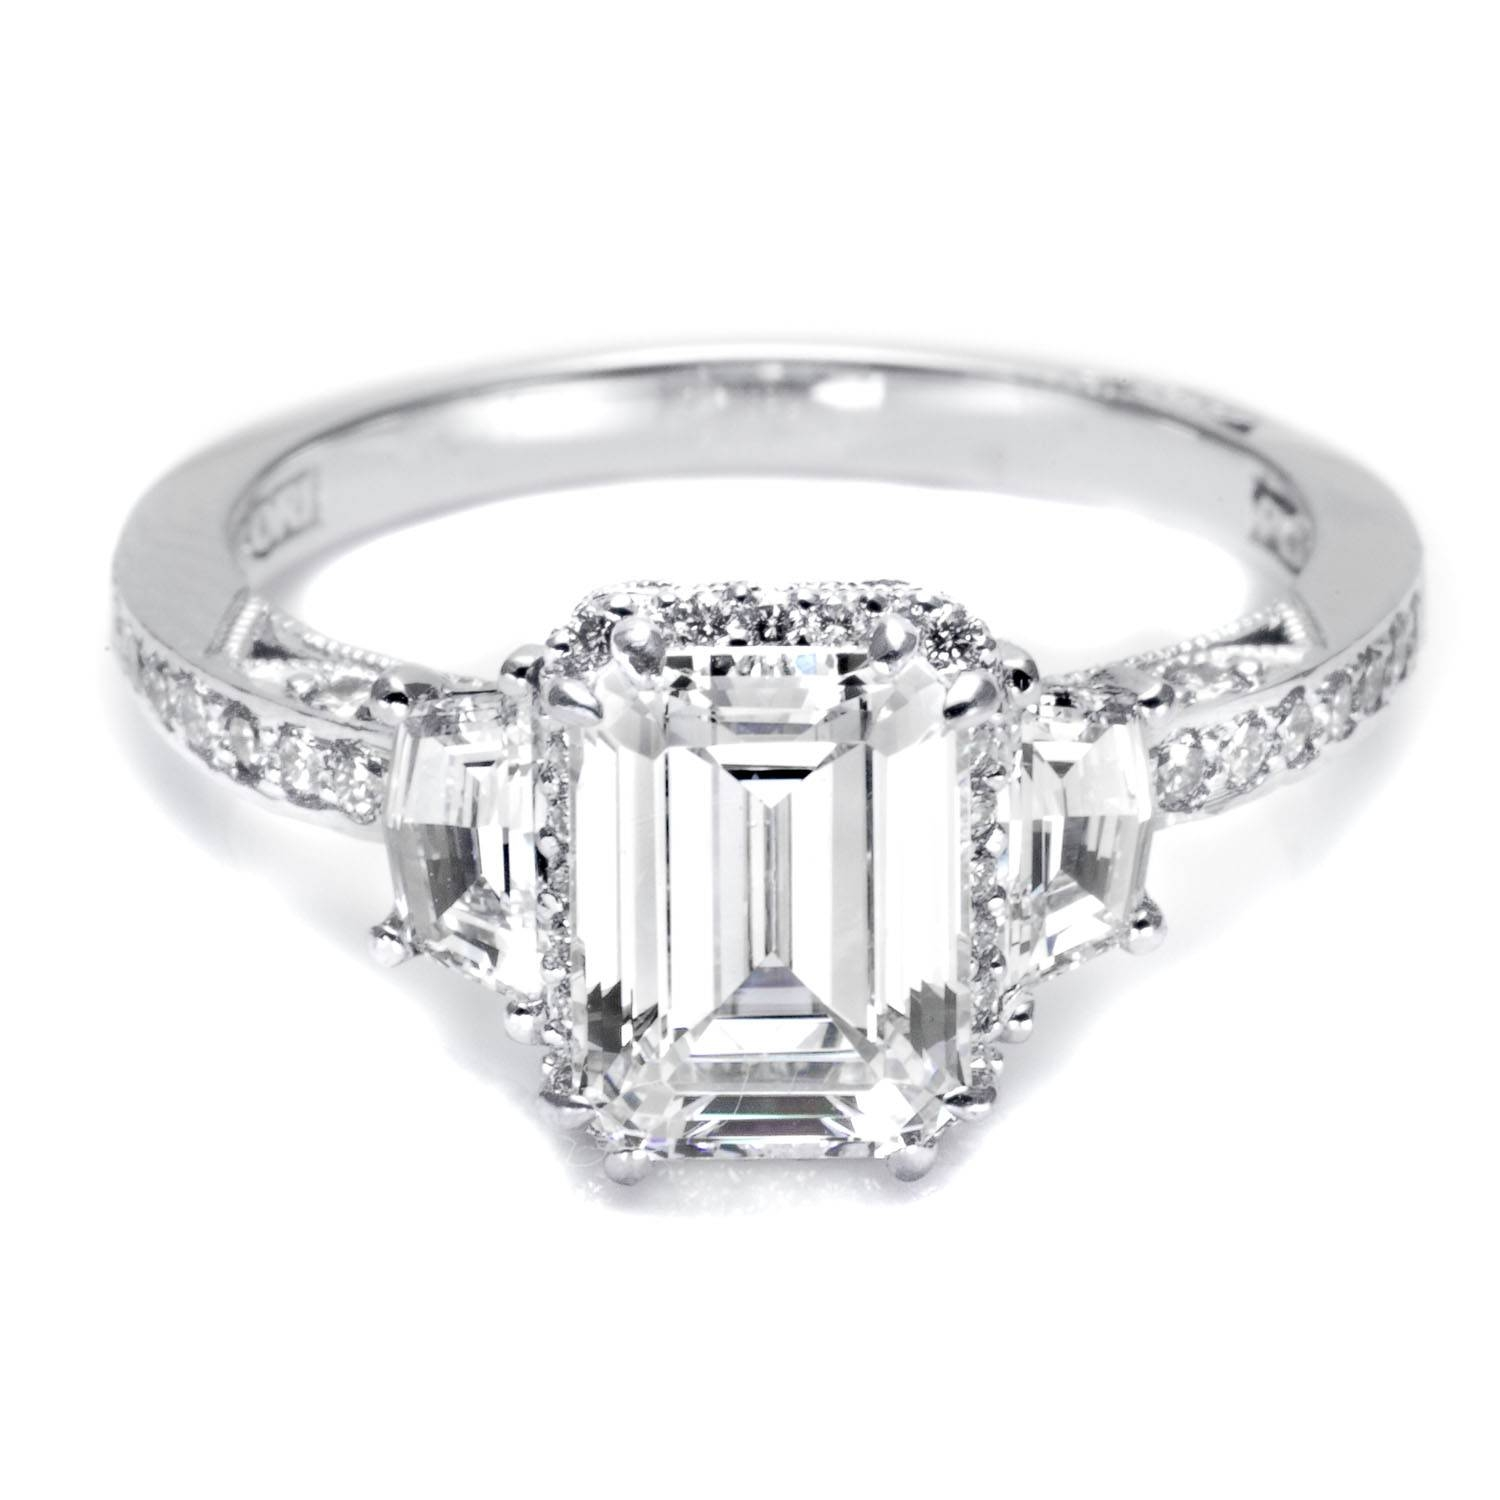 Emerald Cut Diamond Engagement Rings For Loved Once | Wedding In Emerald And Diamond Wedding Rings (View 7 of 15)